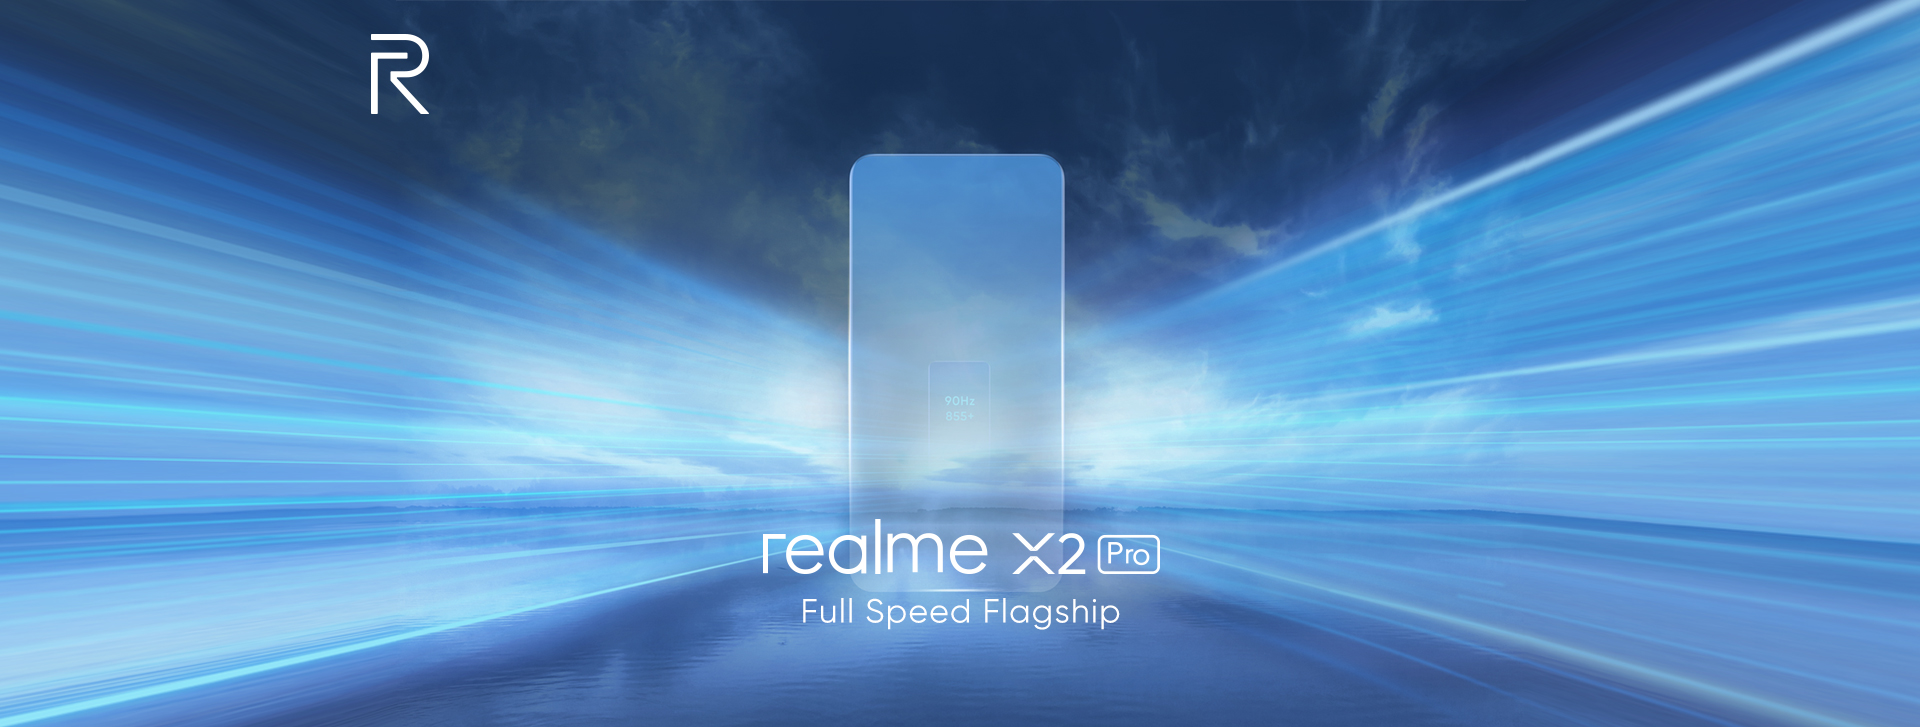 Realme X2 Pro 'Ful Speed Flagship'